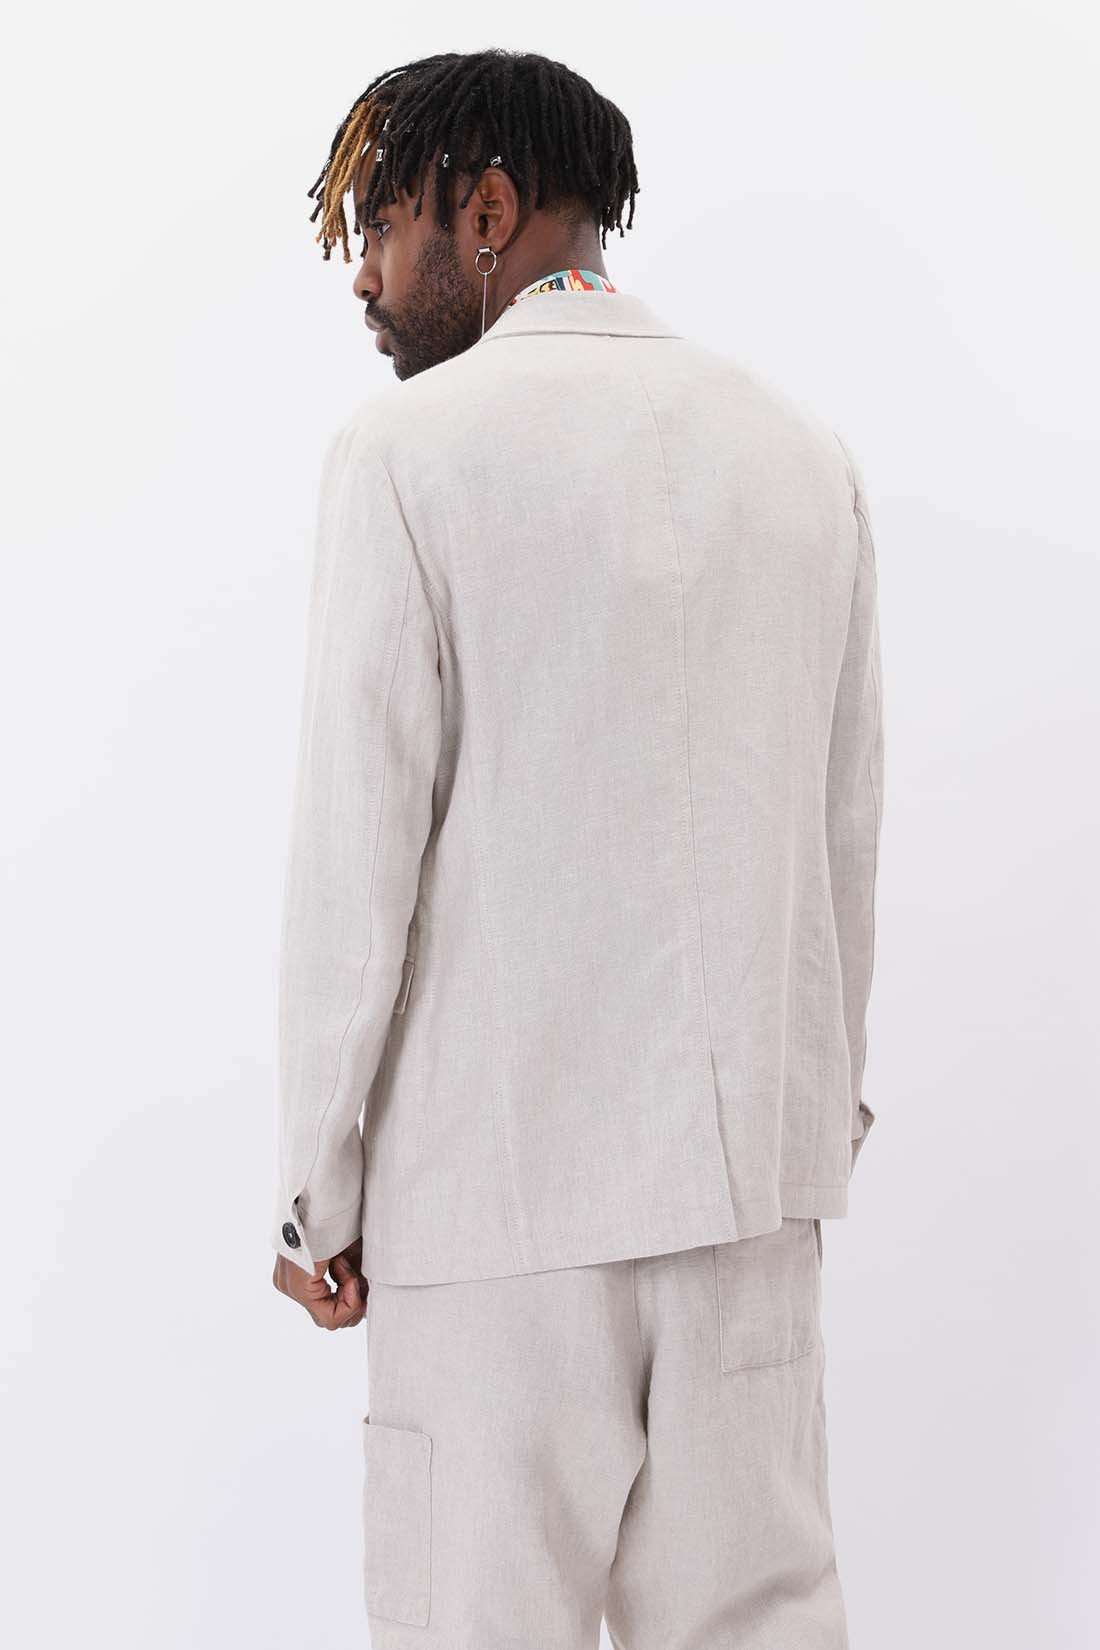 OLIVER SPENCER / Brookes jacket linen Stone